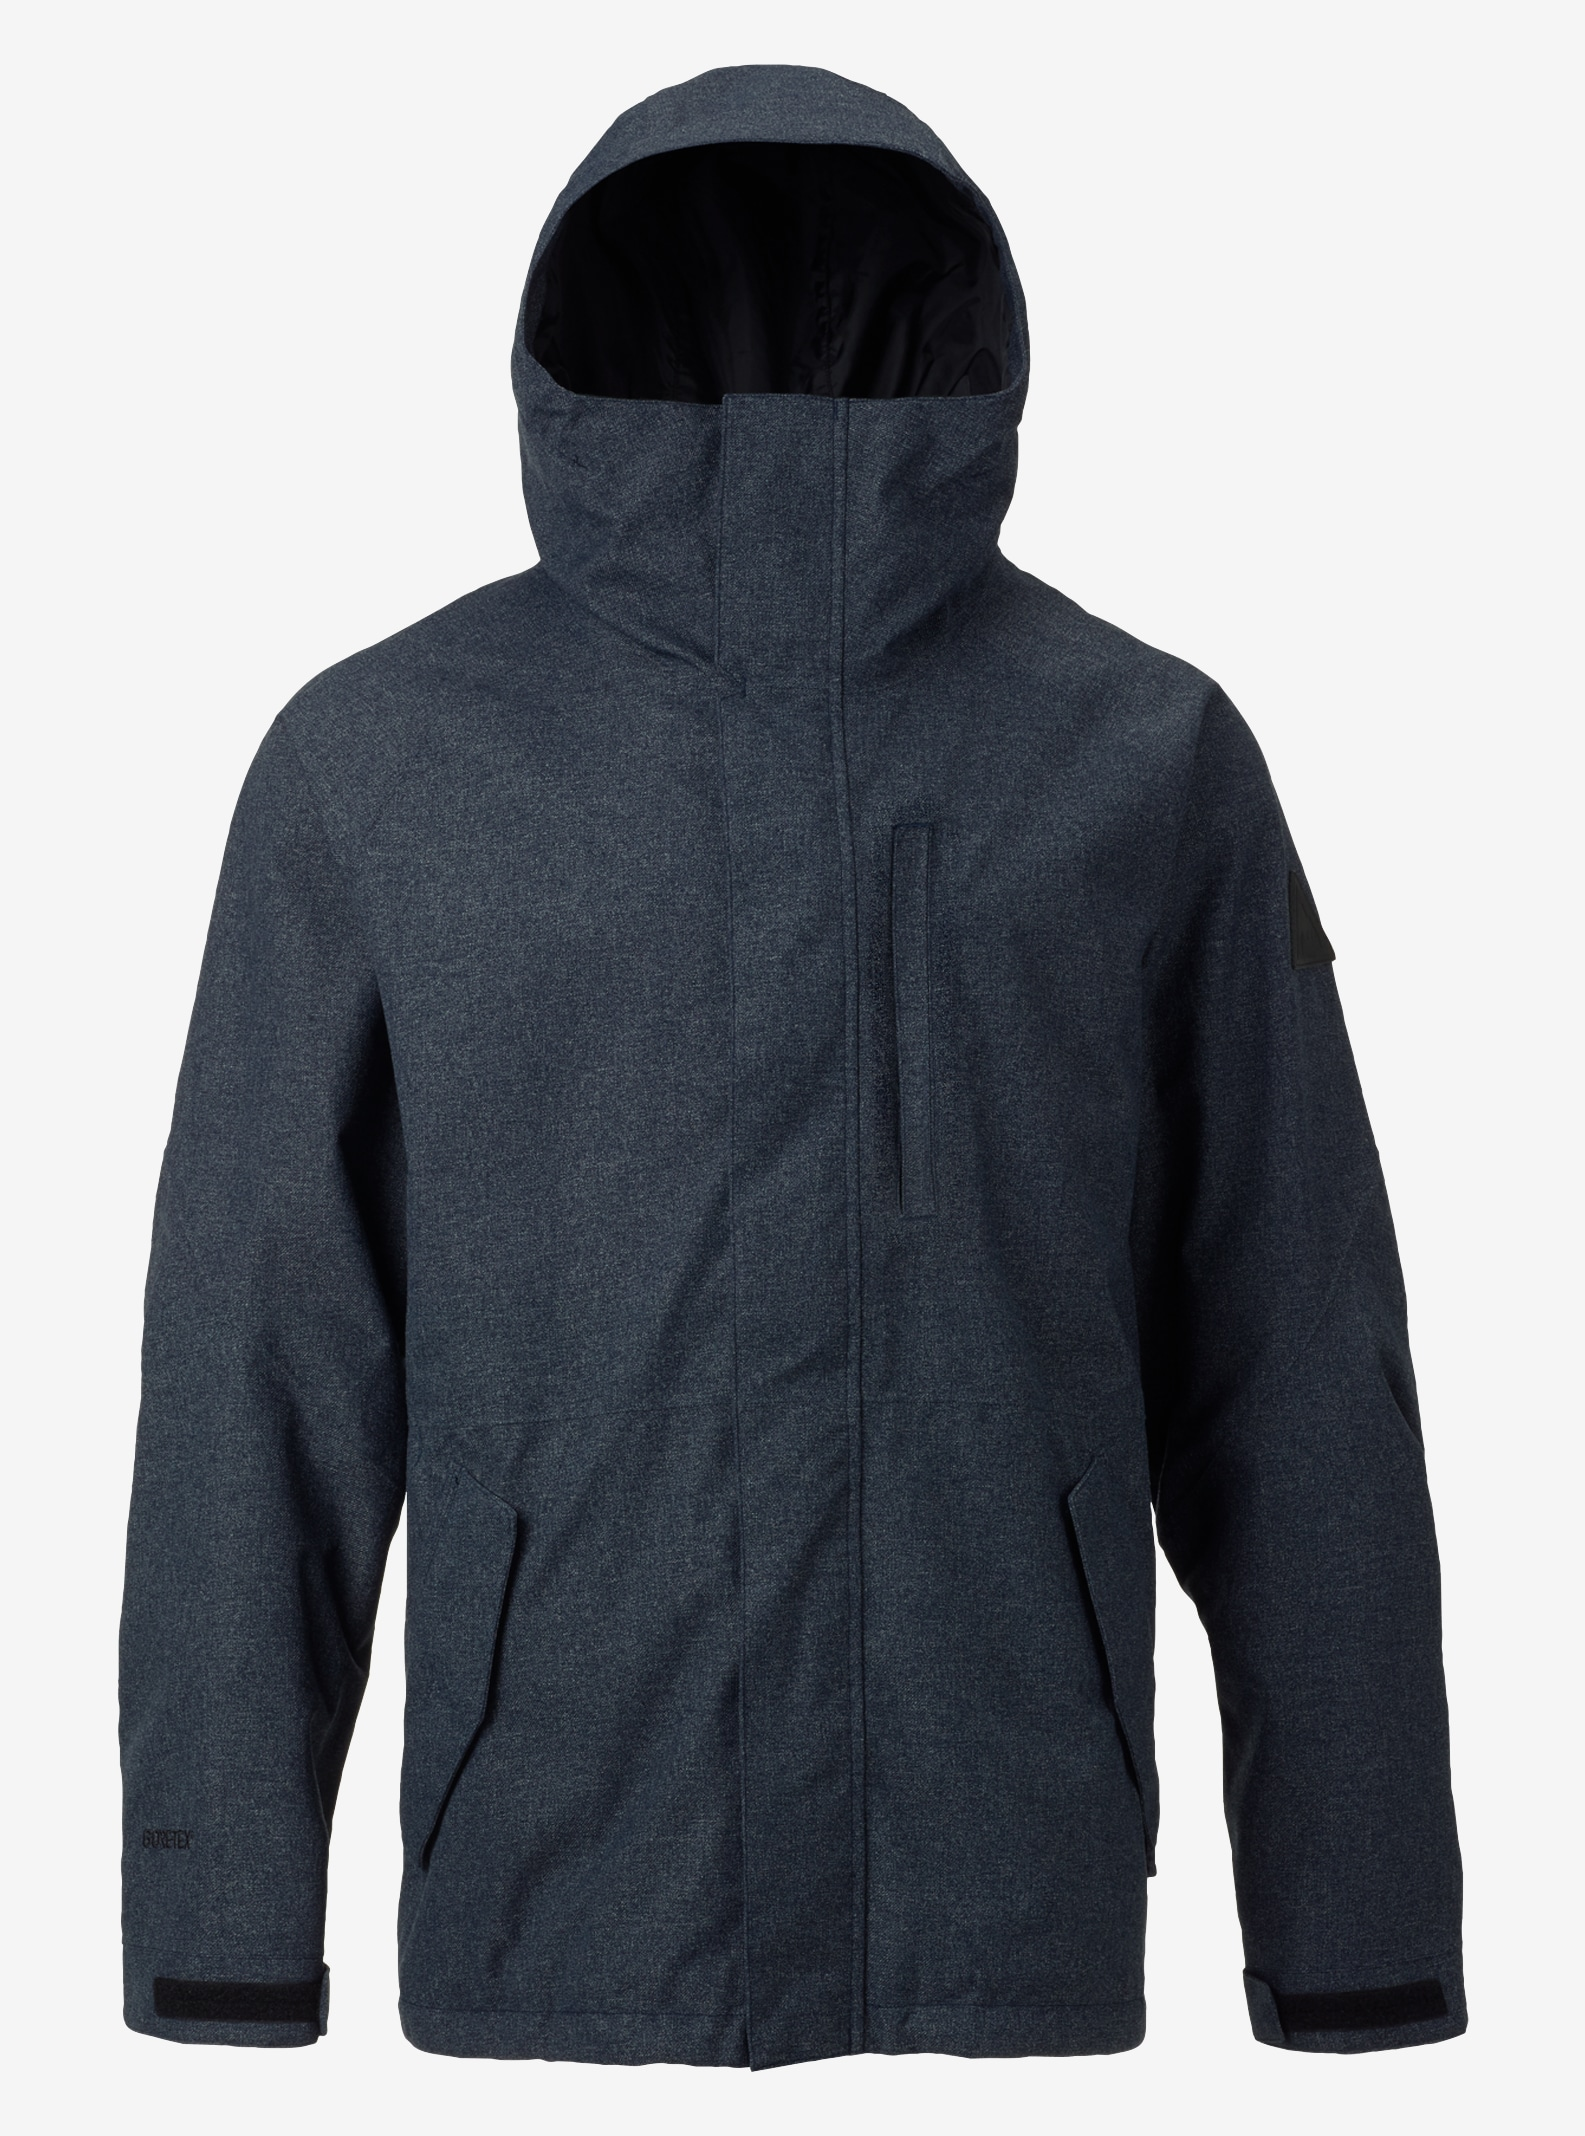 Men's Burton GORE‑TEX® Radial Shell Jacket shown in Black Iris